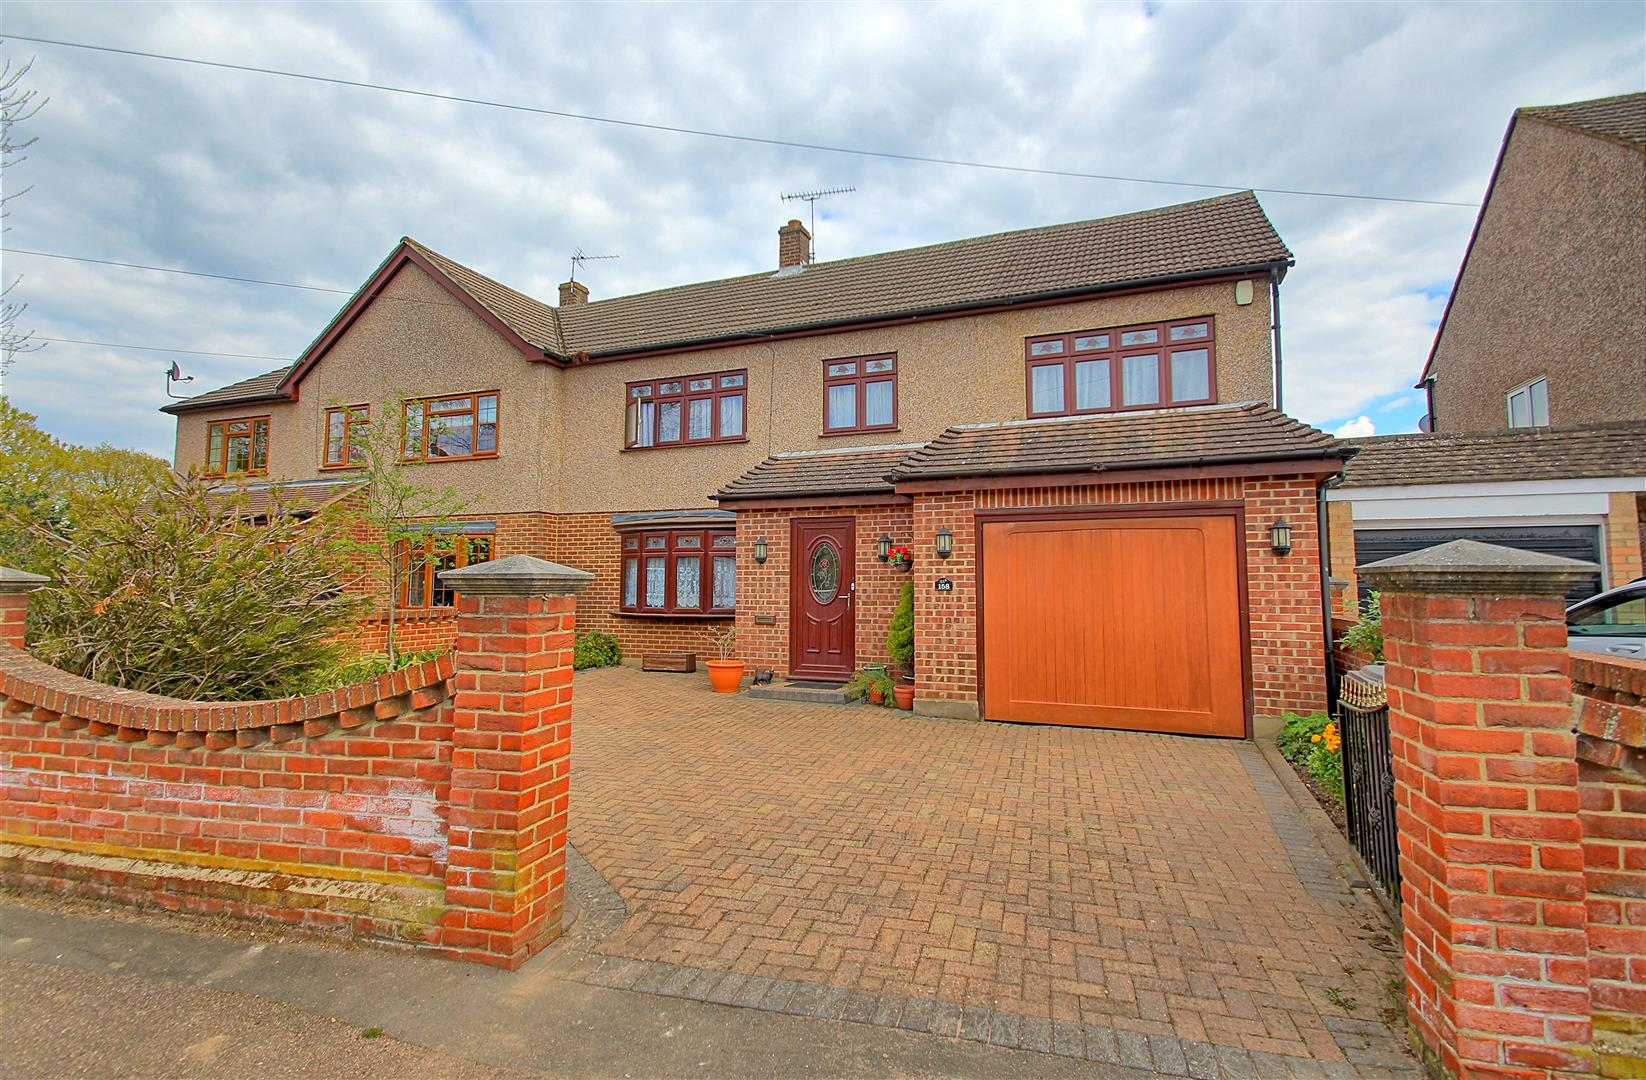 COZENS ROAD, WARE - SUBSTANTIAL FAMILY HOME